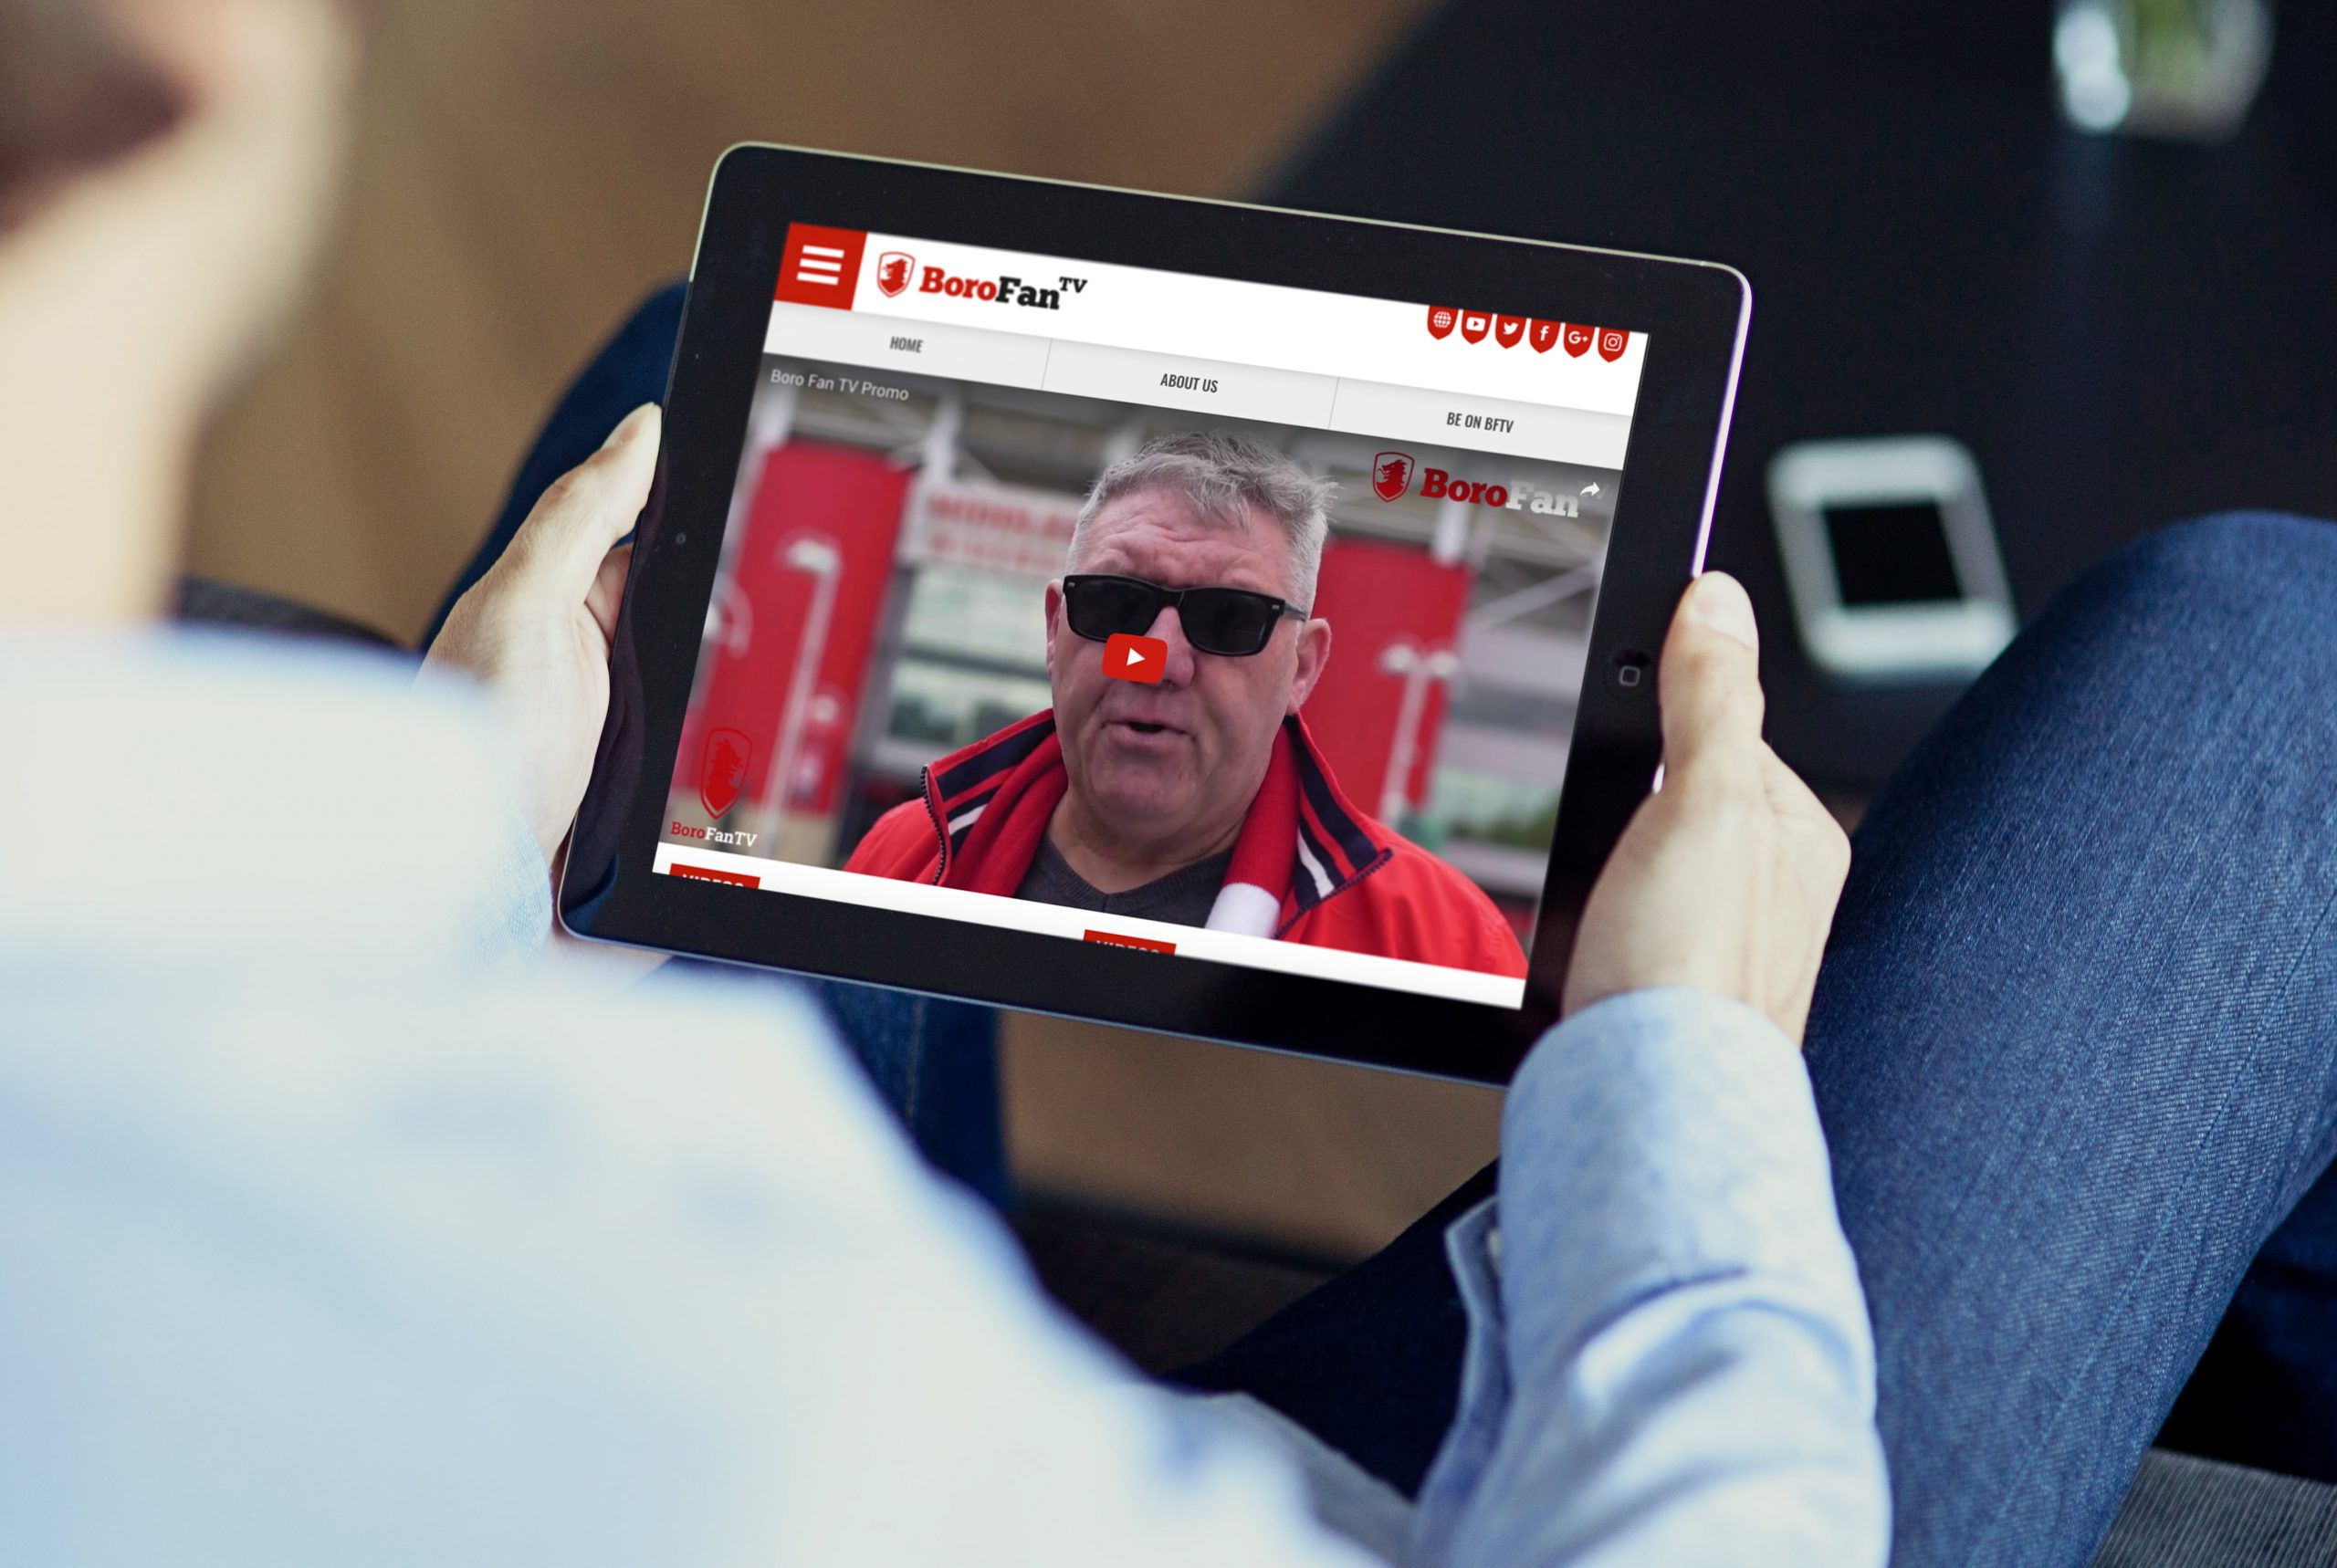 Boro Fan TV website being viewed by person on tablet device